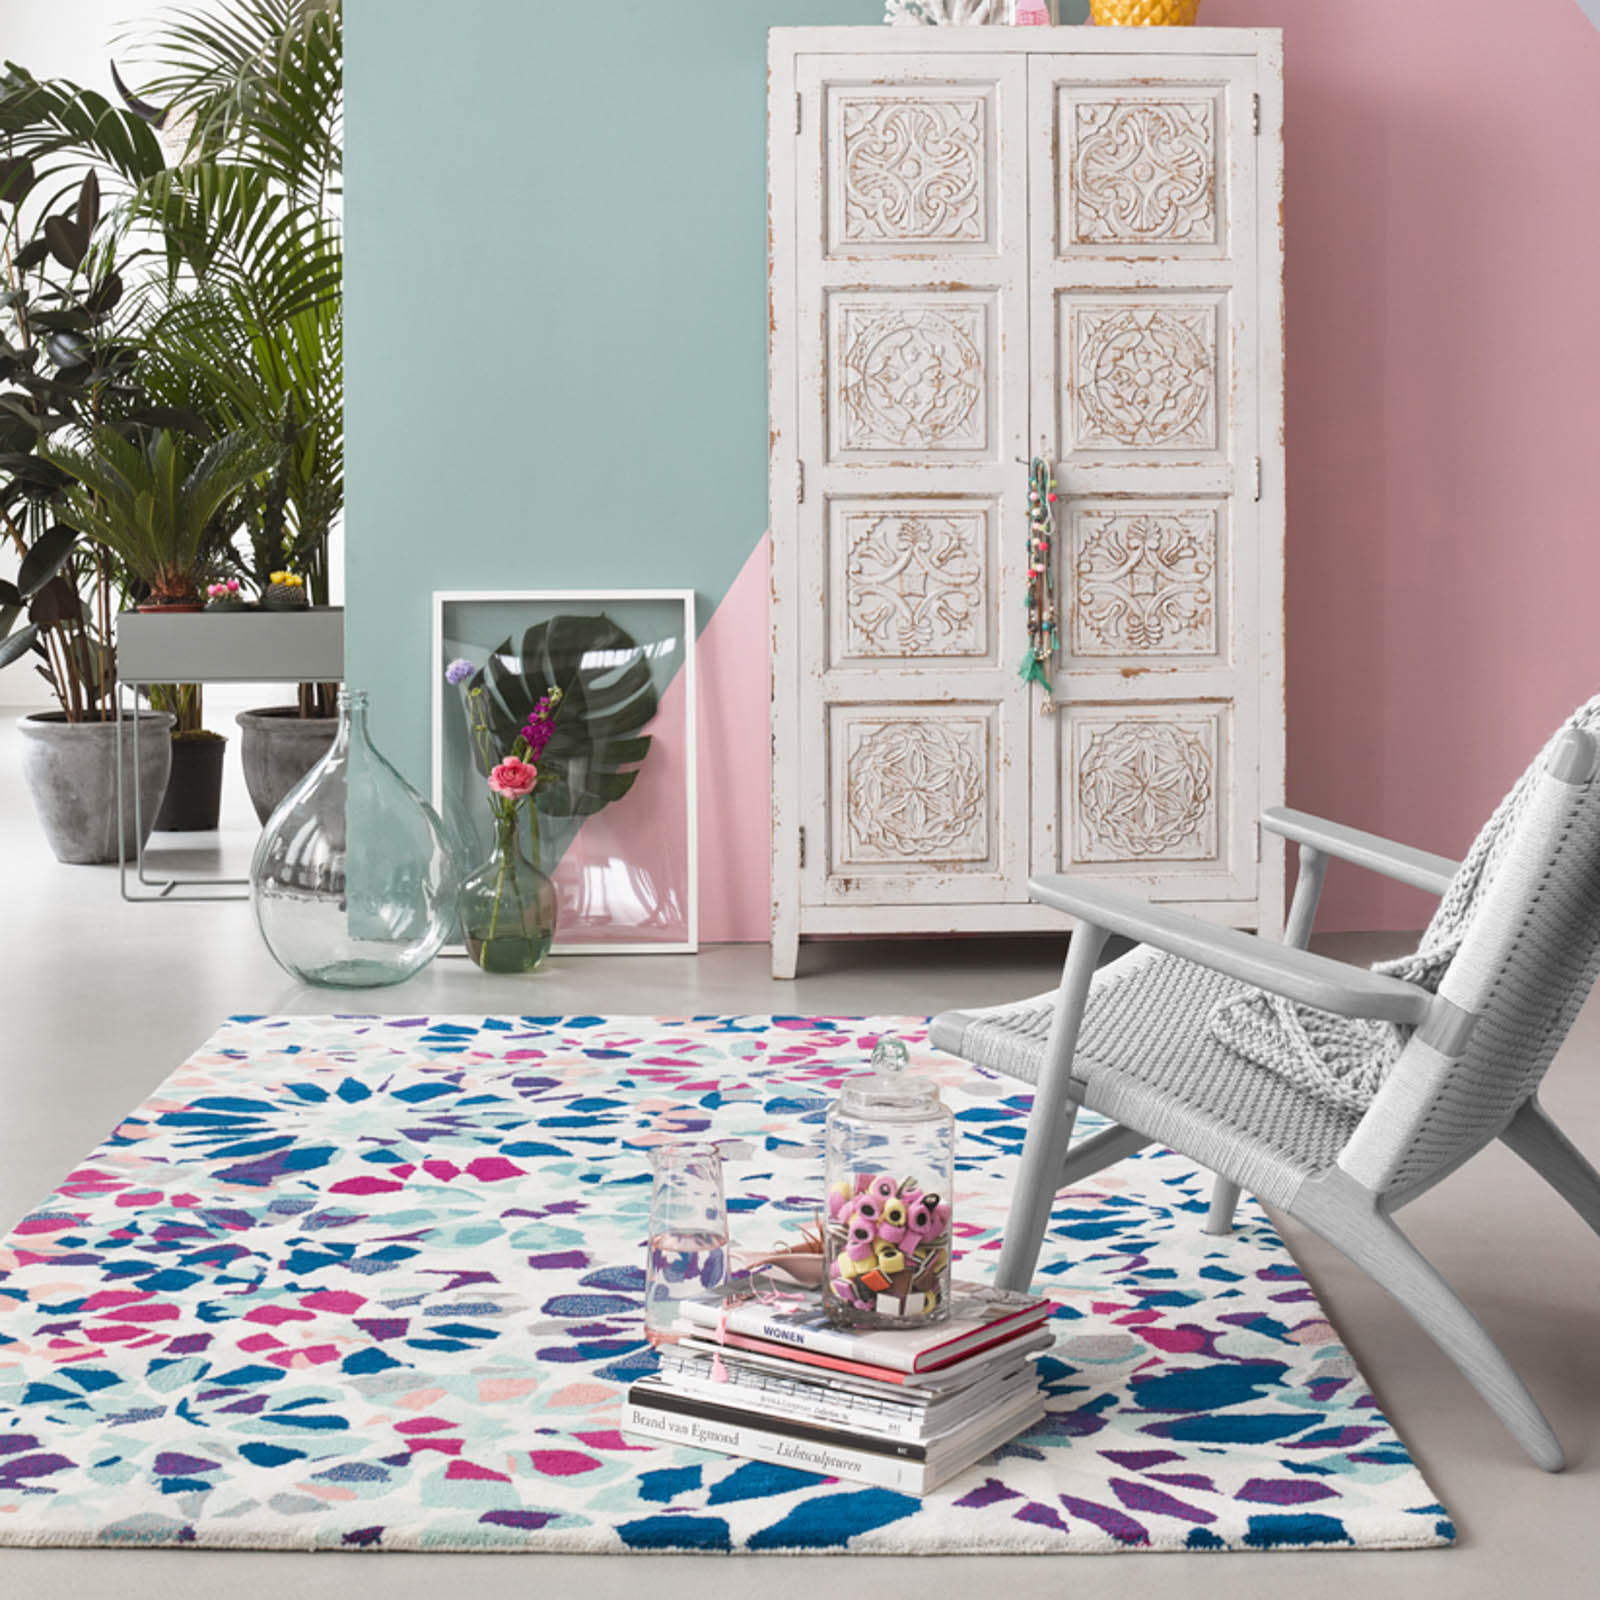 Accessorize Home Kaleidoscopes rugs